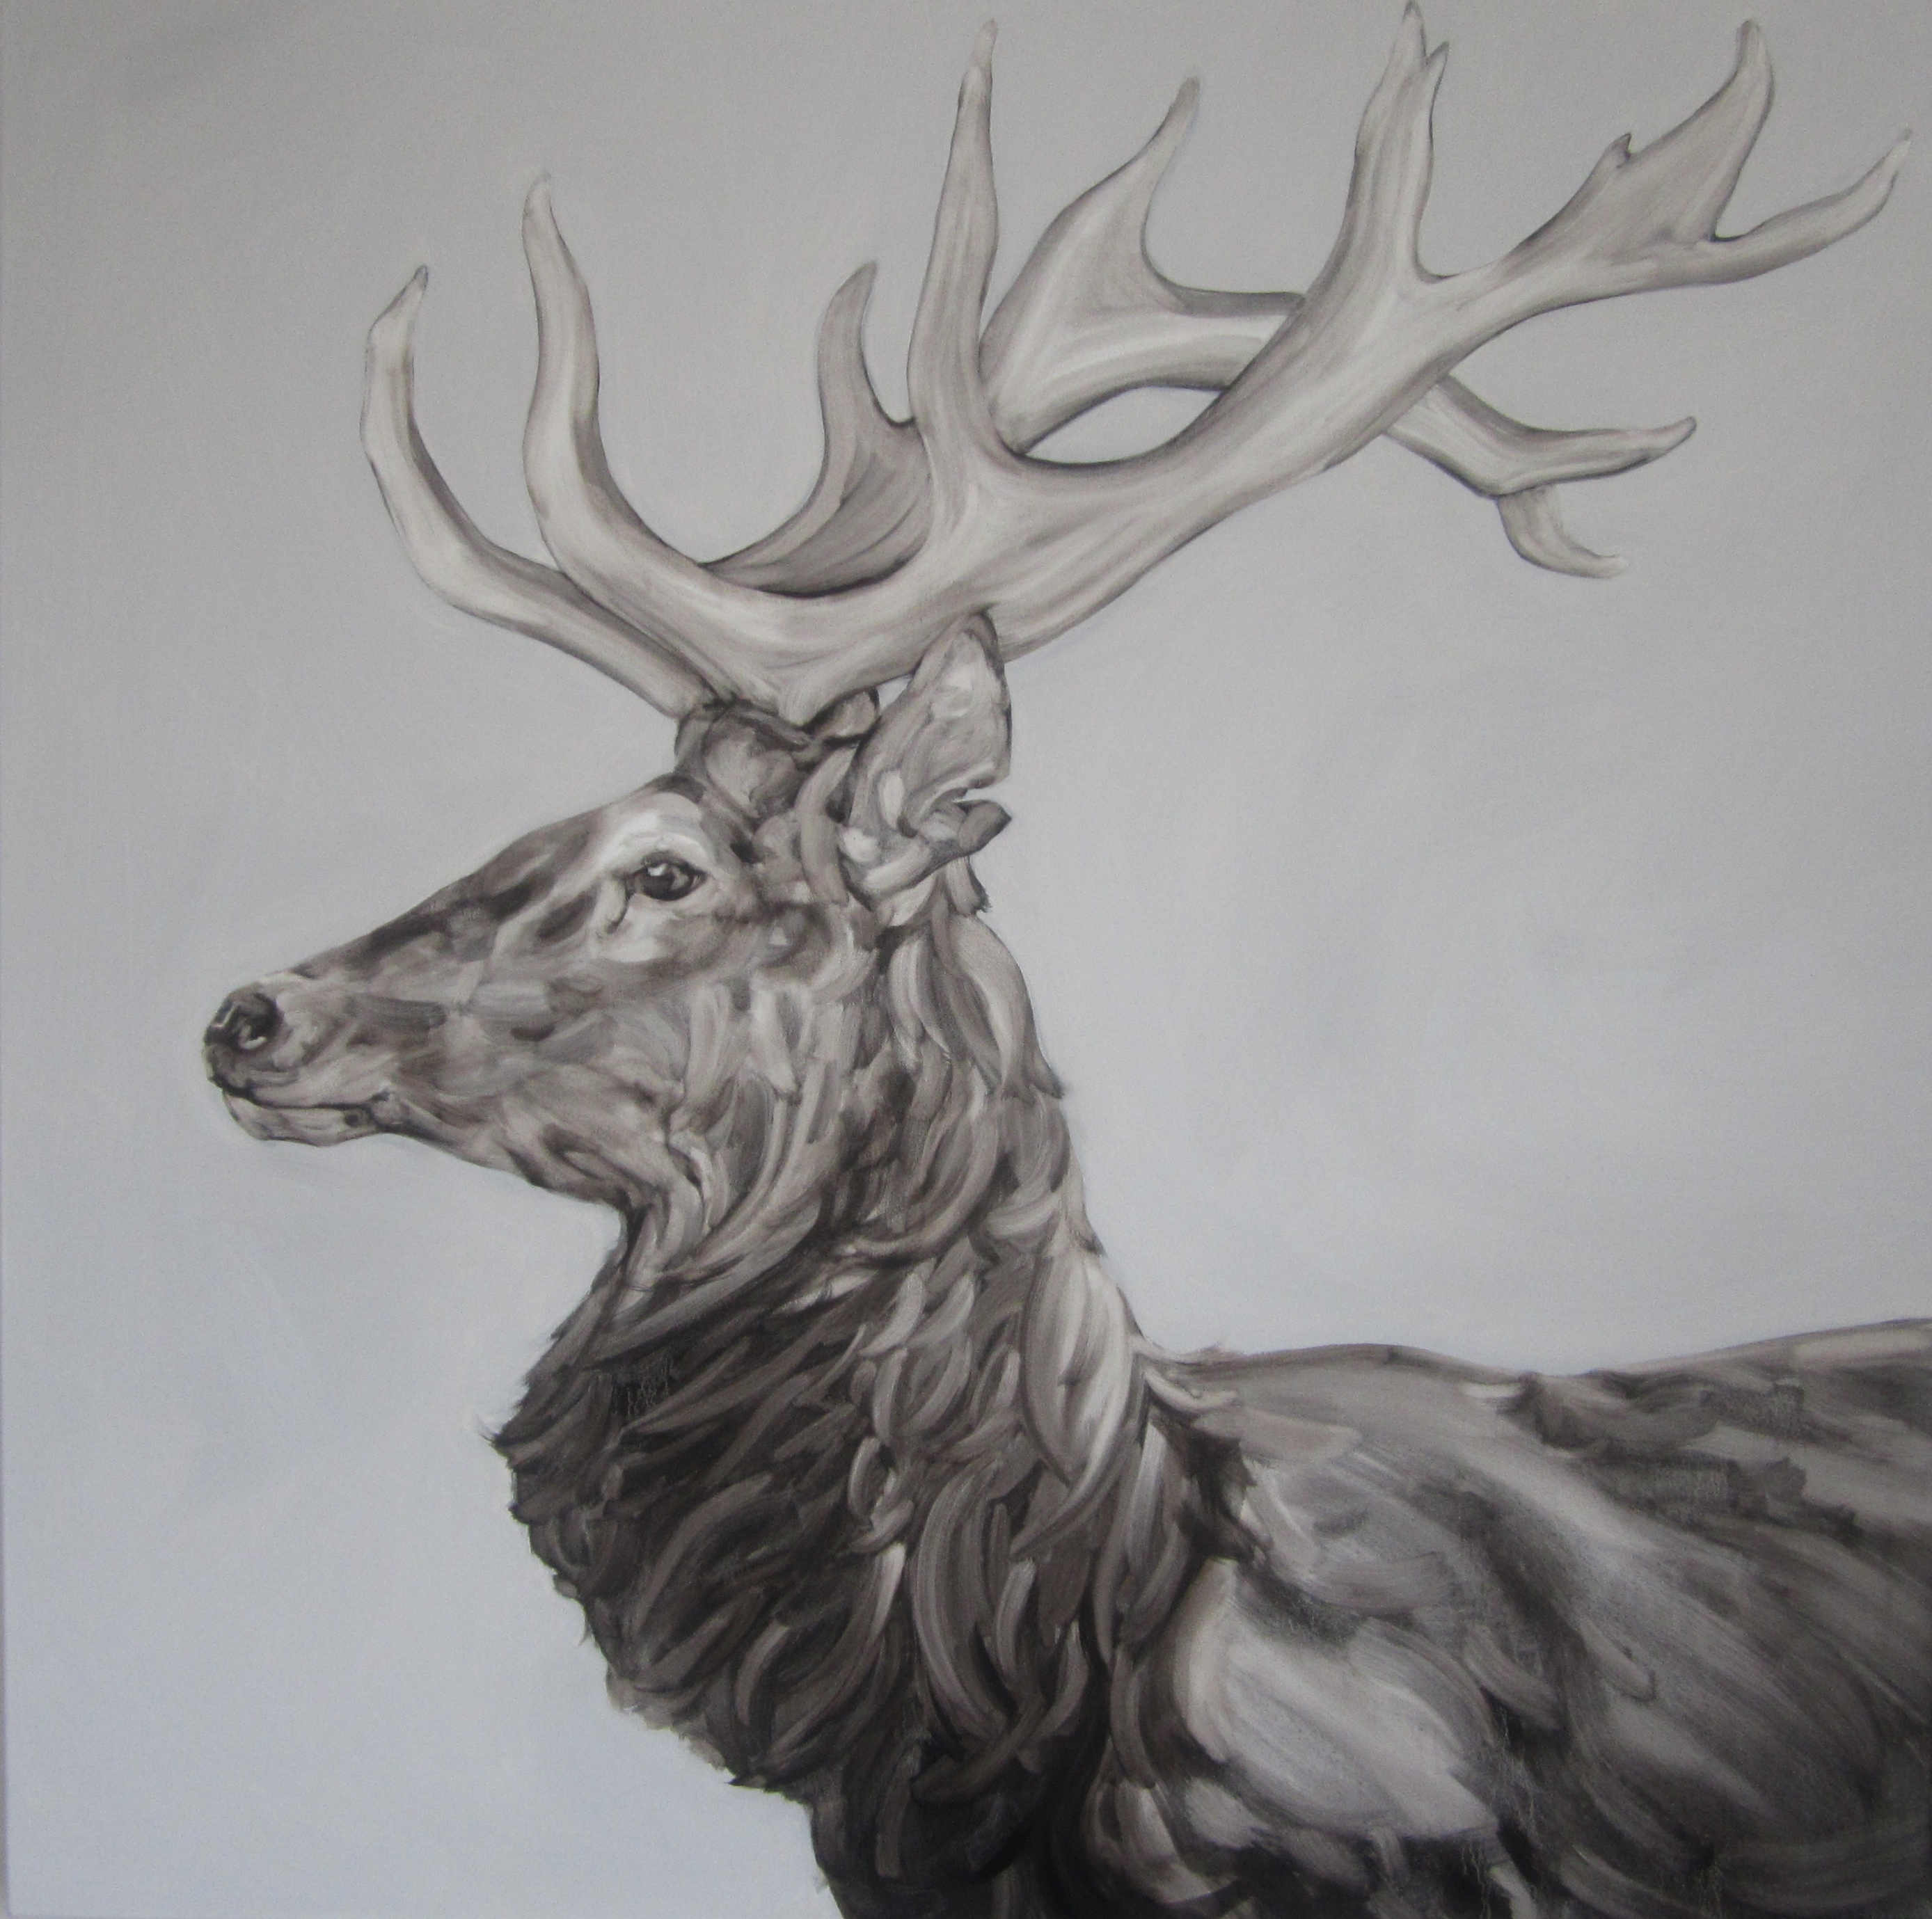 Drawn stag profile Found Stag )100x100cm Community And